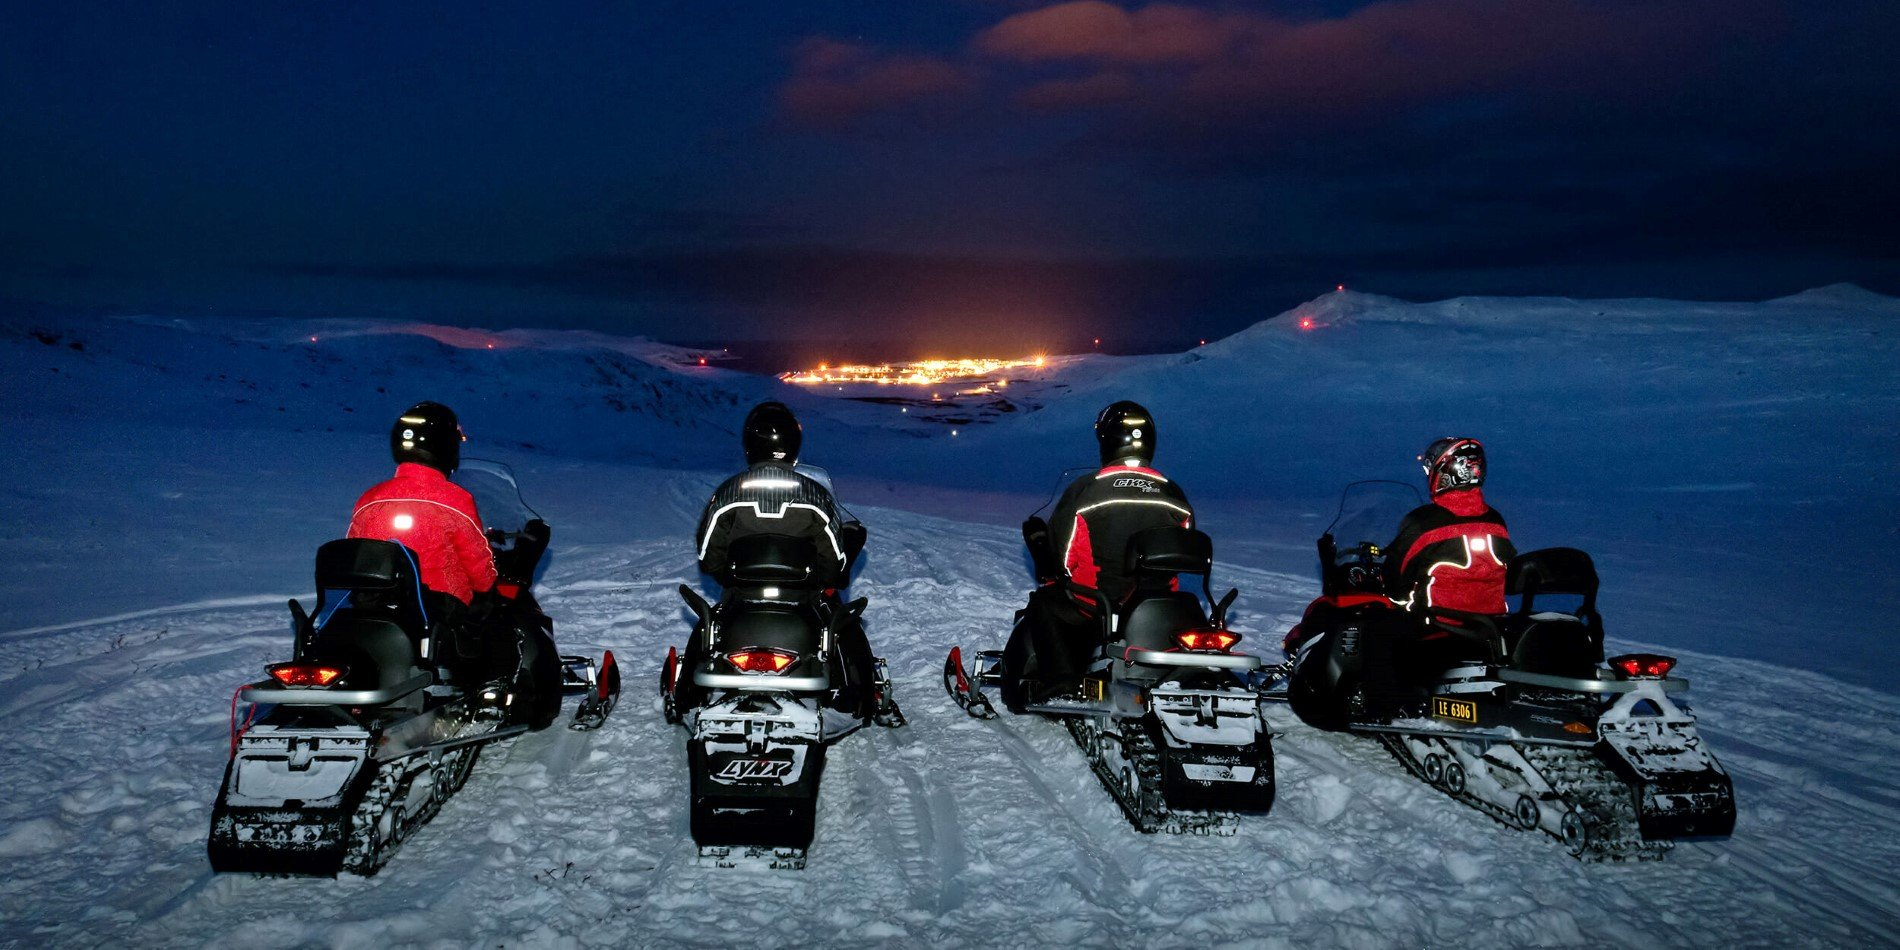 A group of people in a snowmobile